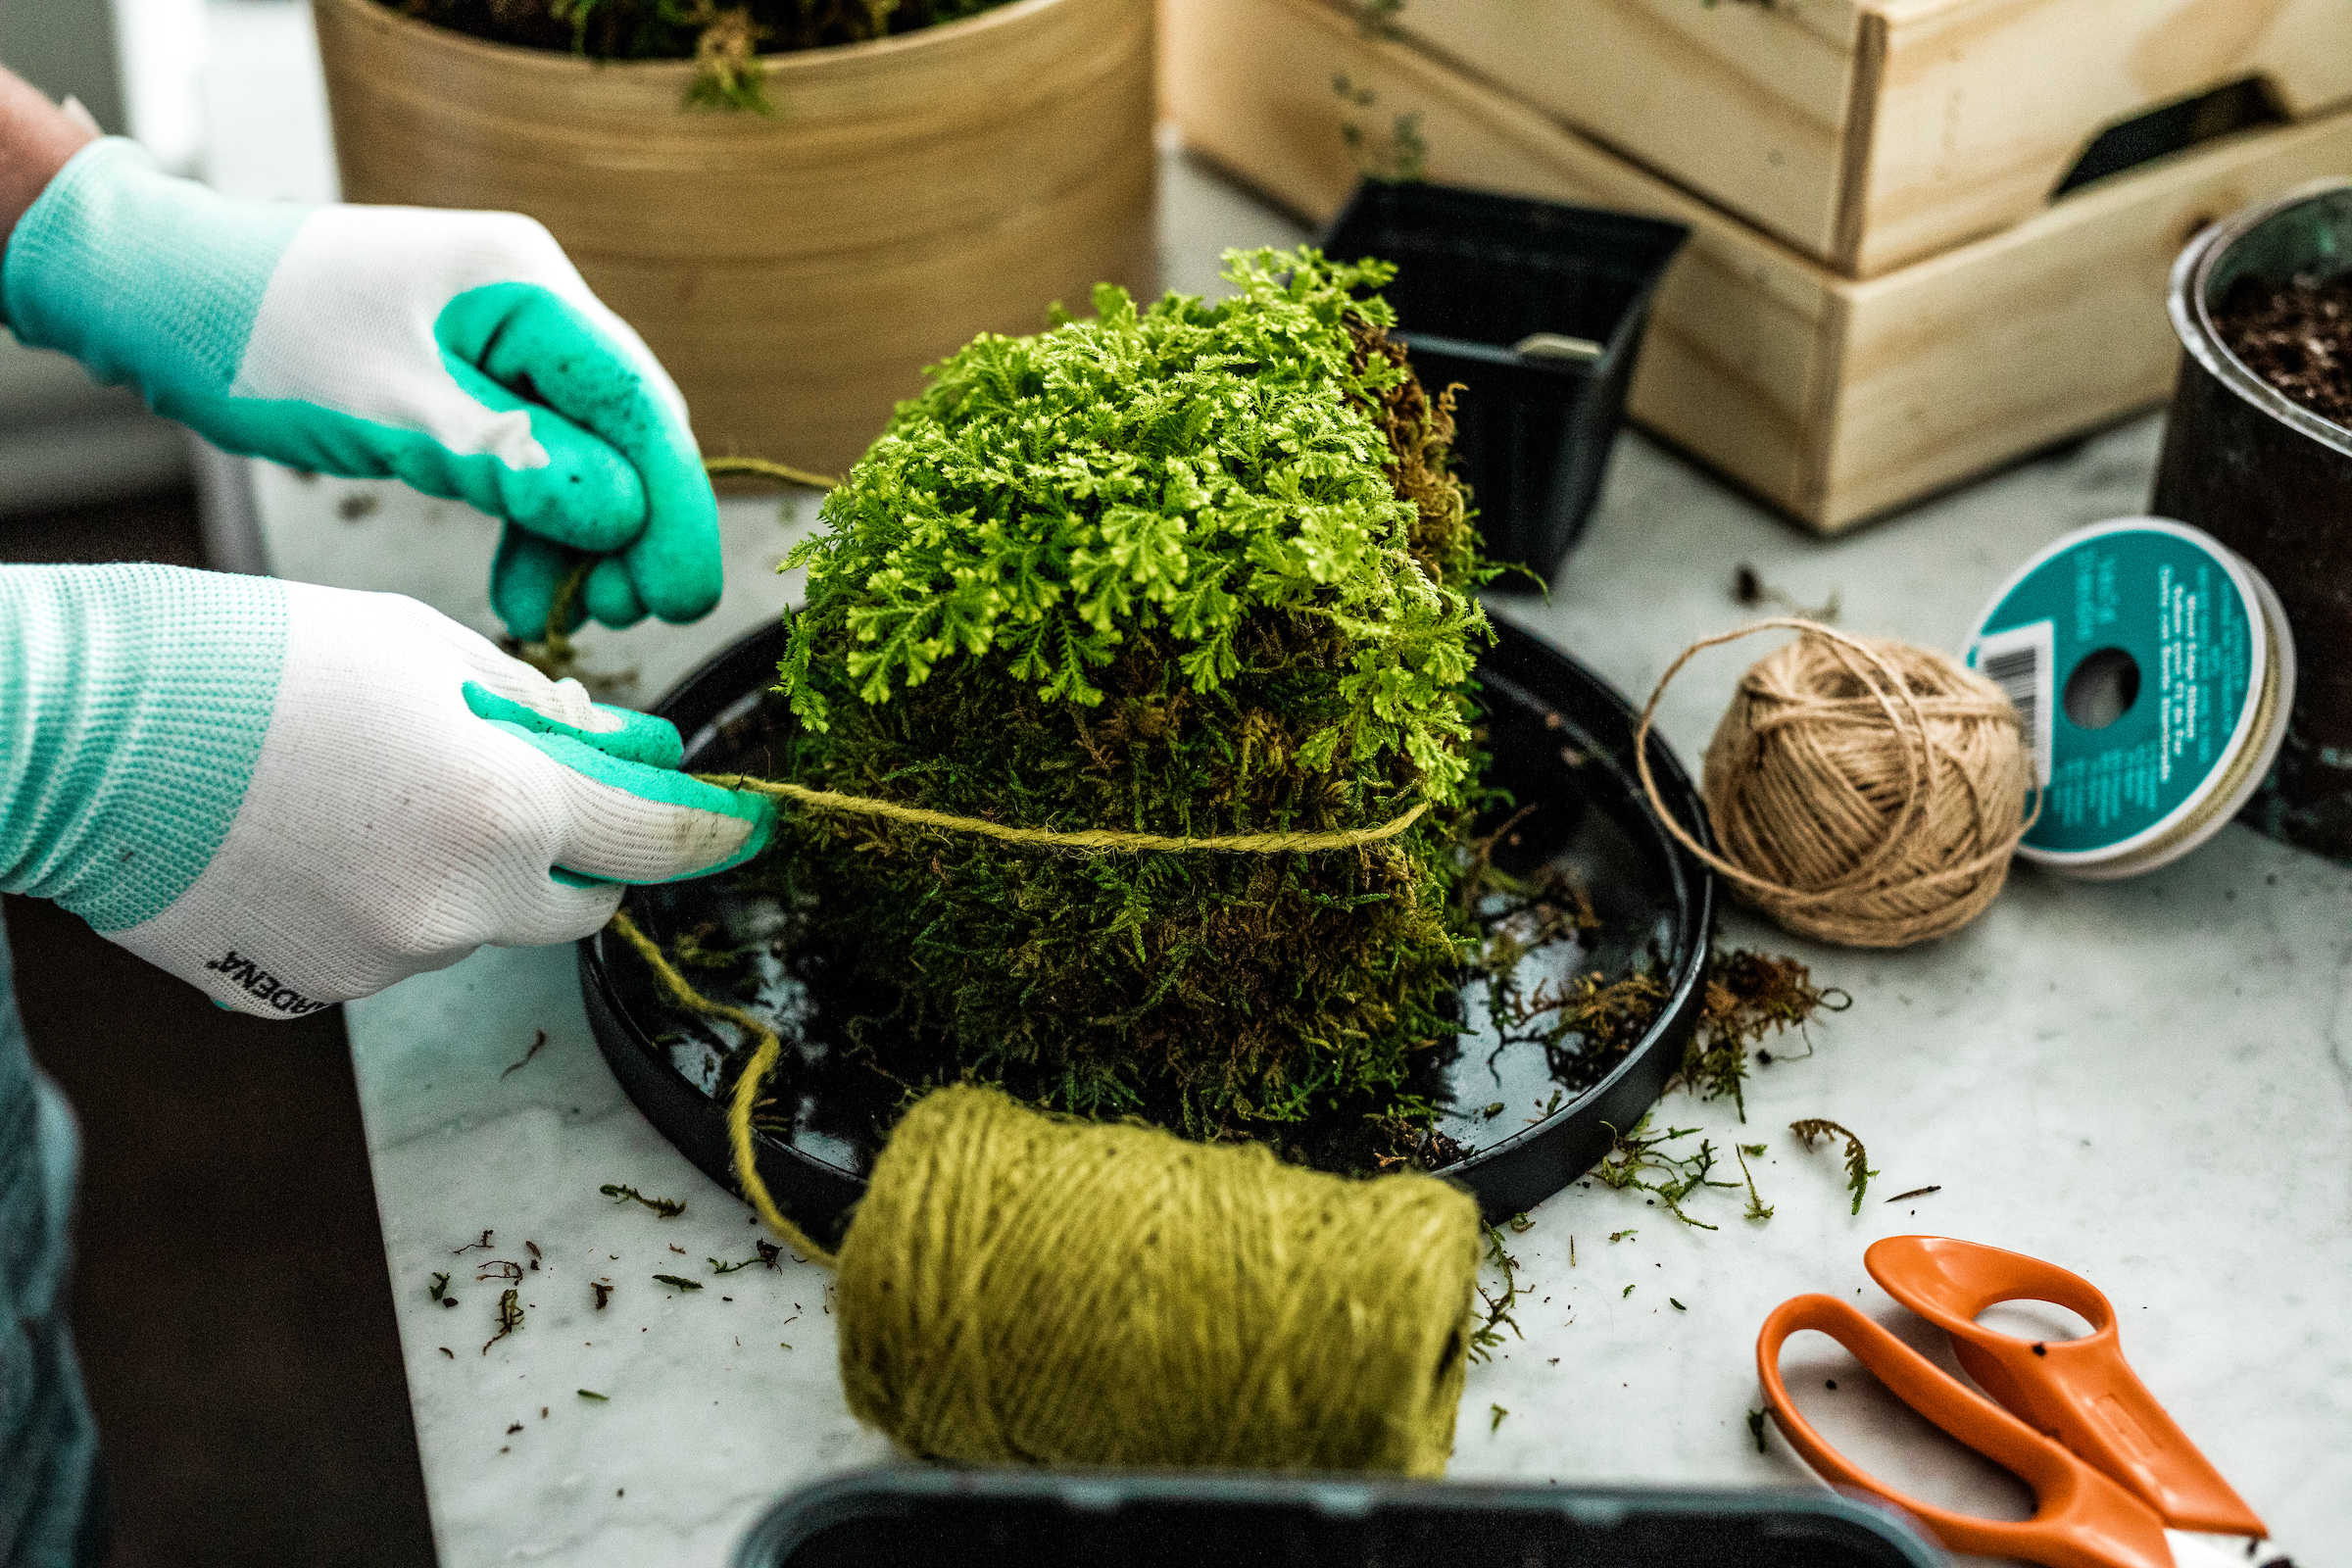 Use twine to tie the moss in place.